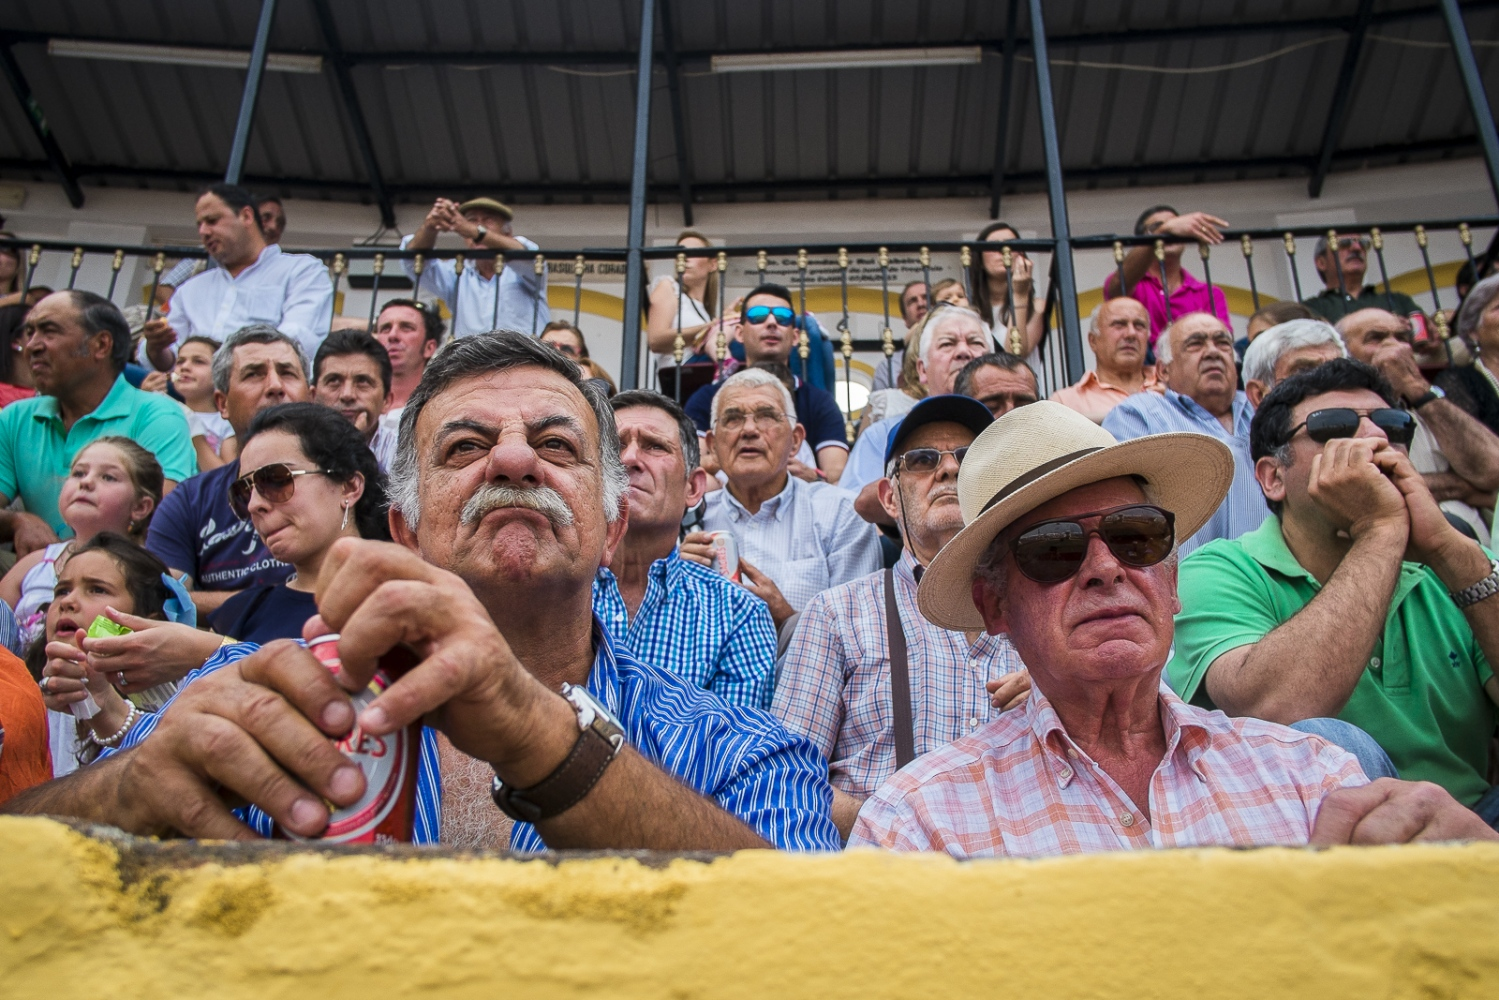 Crowd during the bullfight in Santa Eulália.